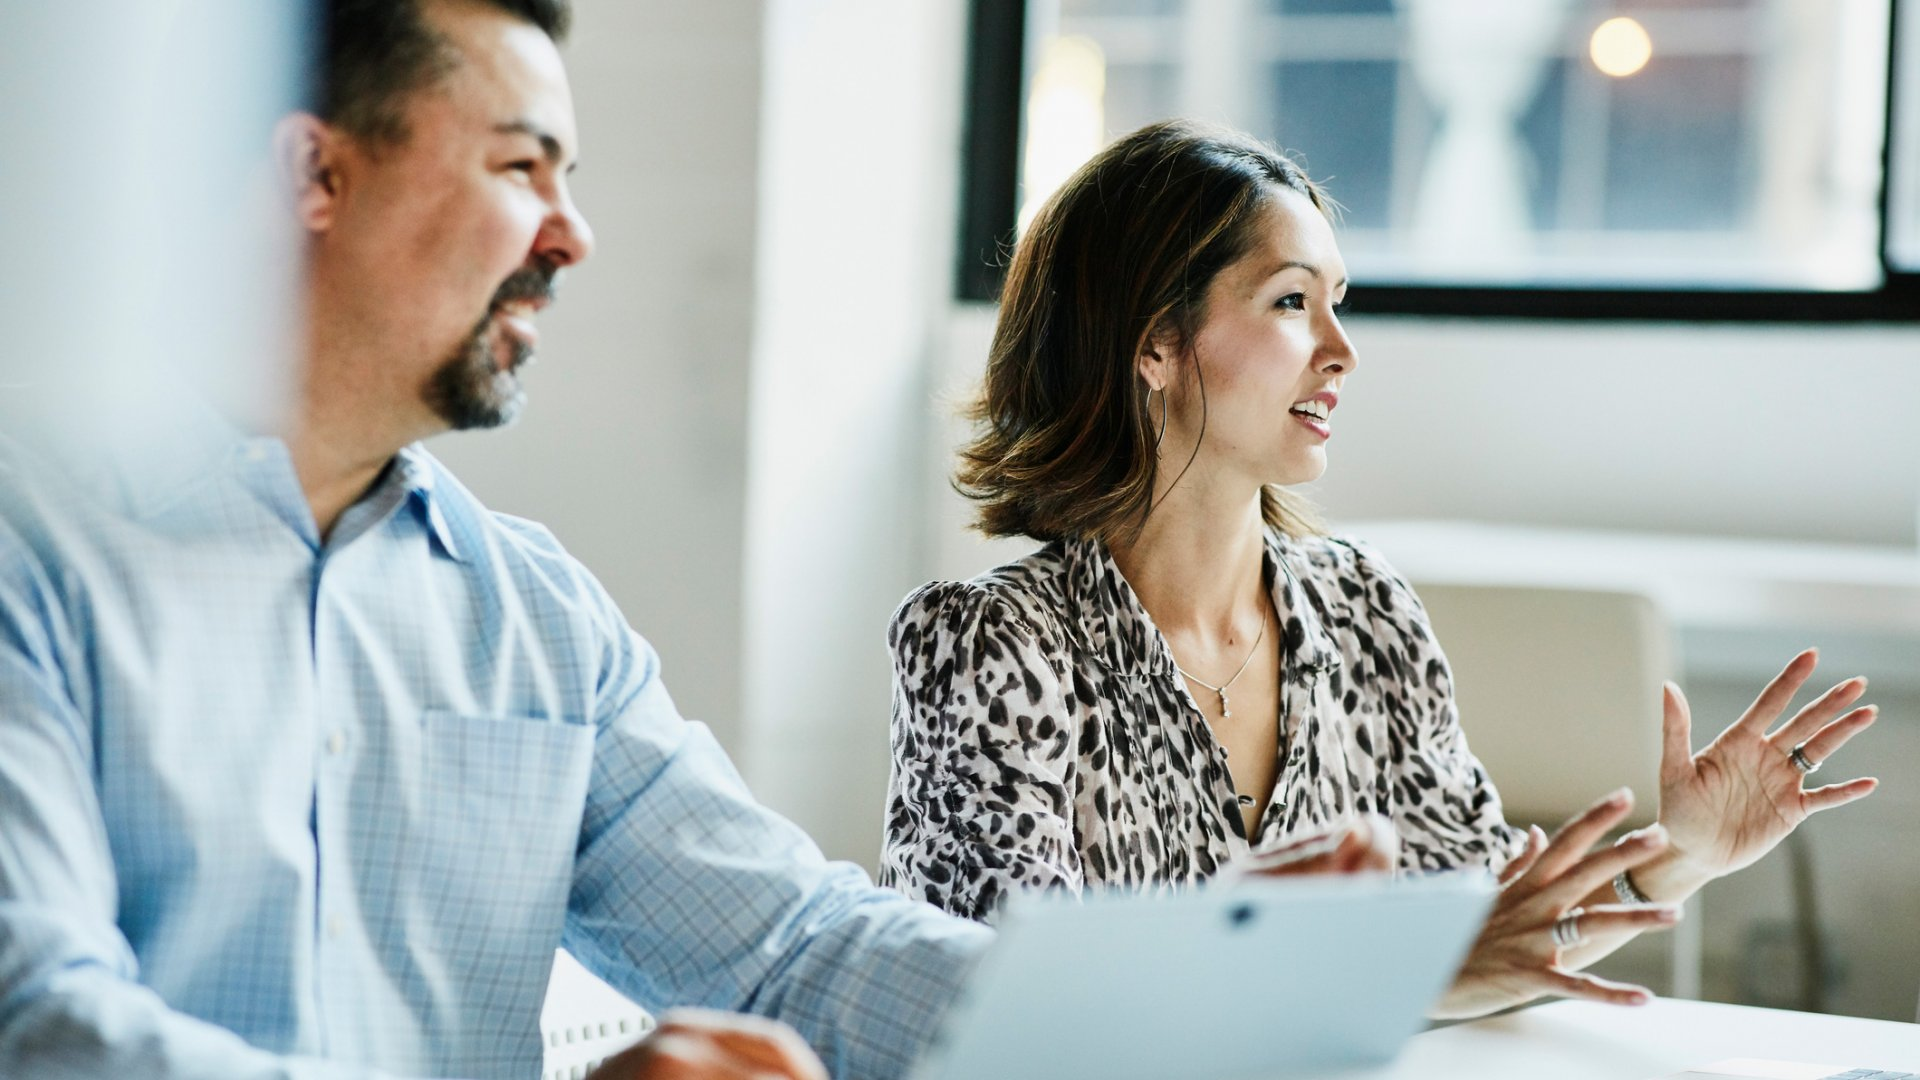 5 Leadership Tips for Making Your Employees' Work Lives Better